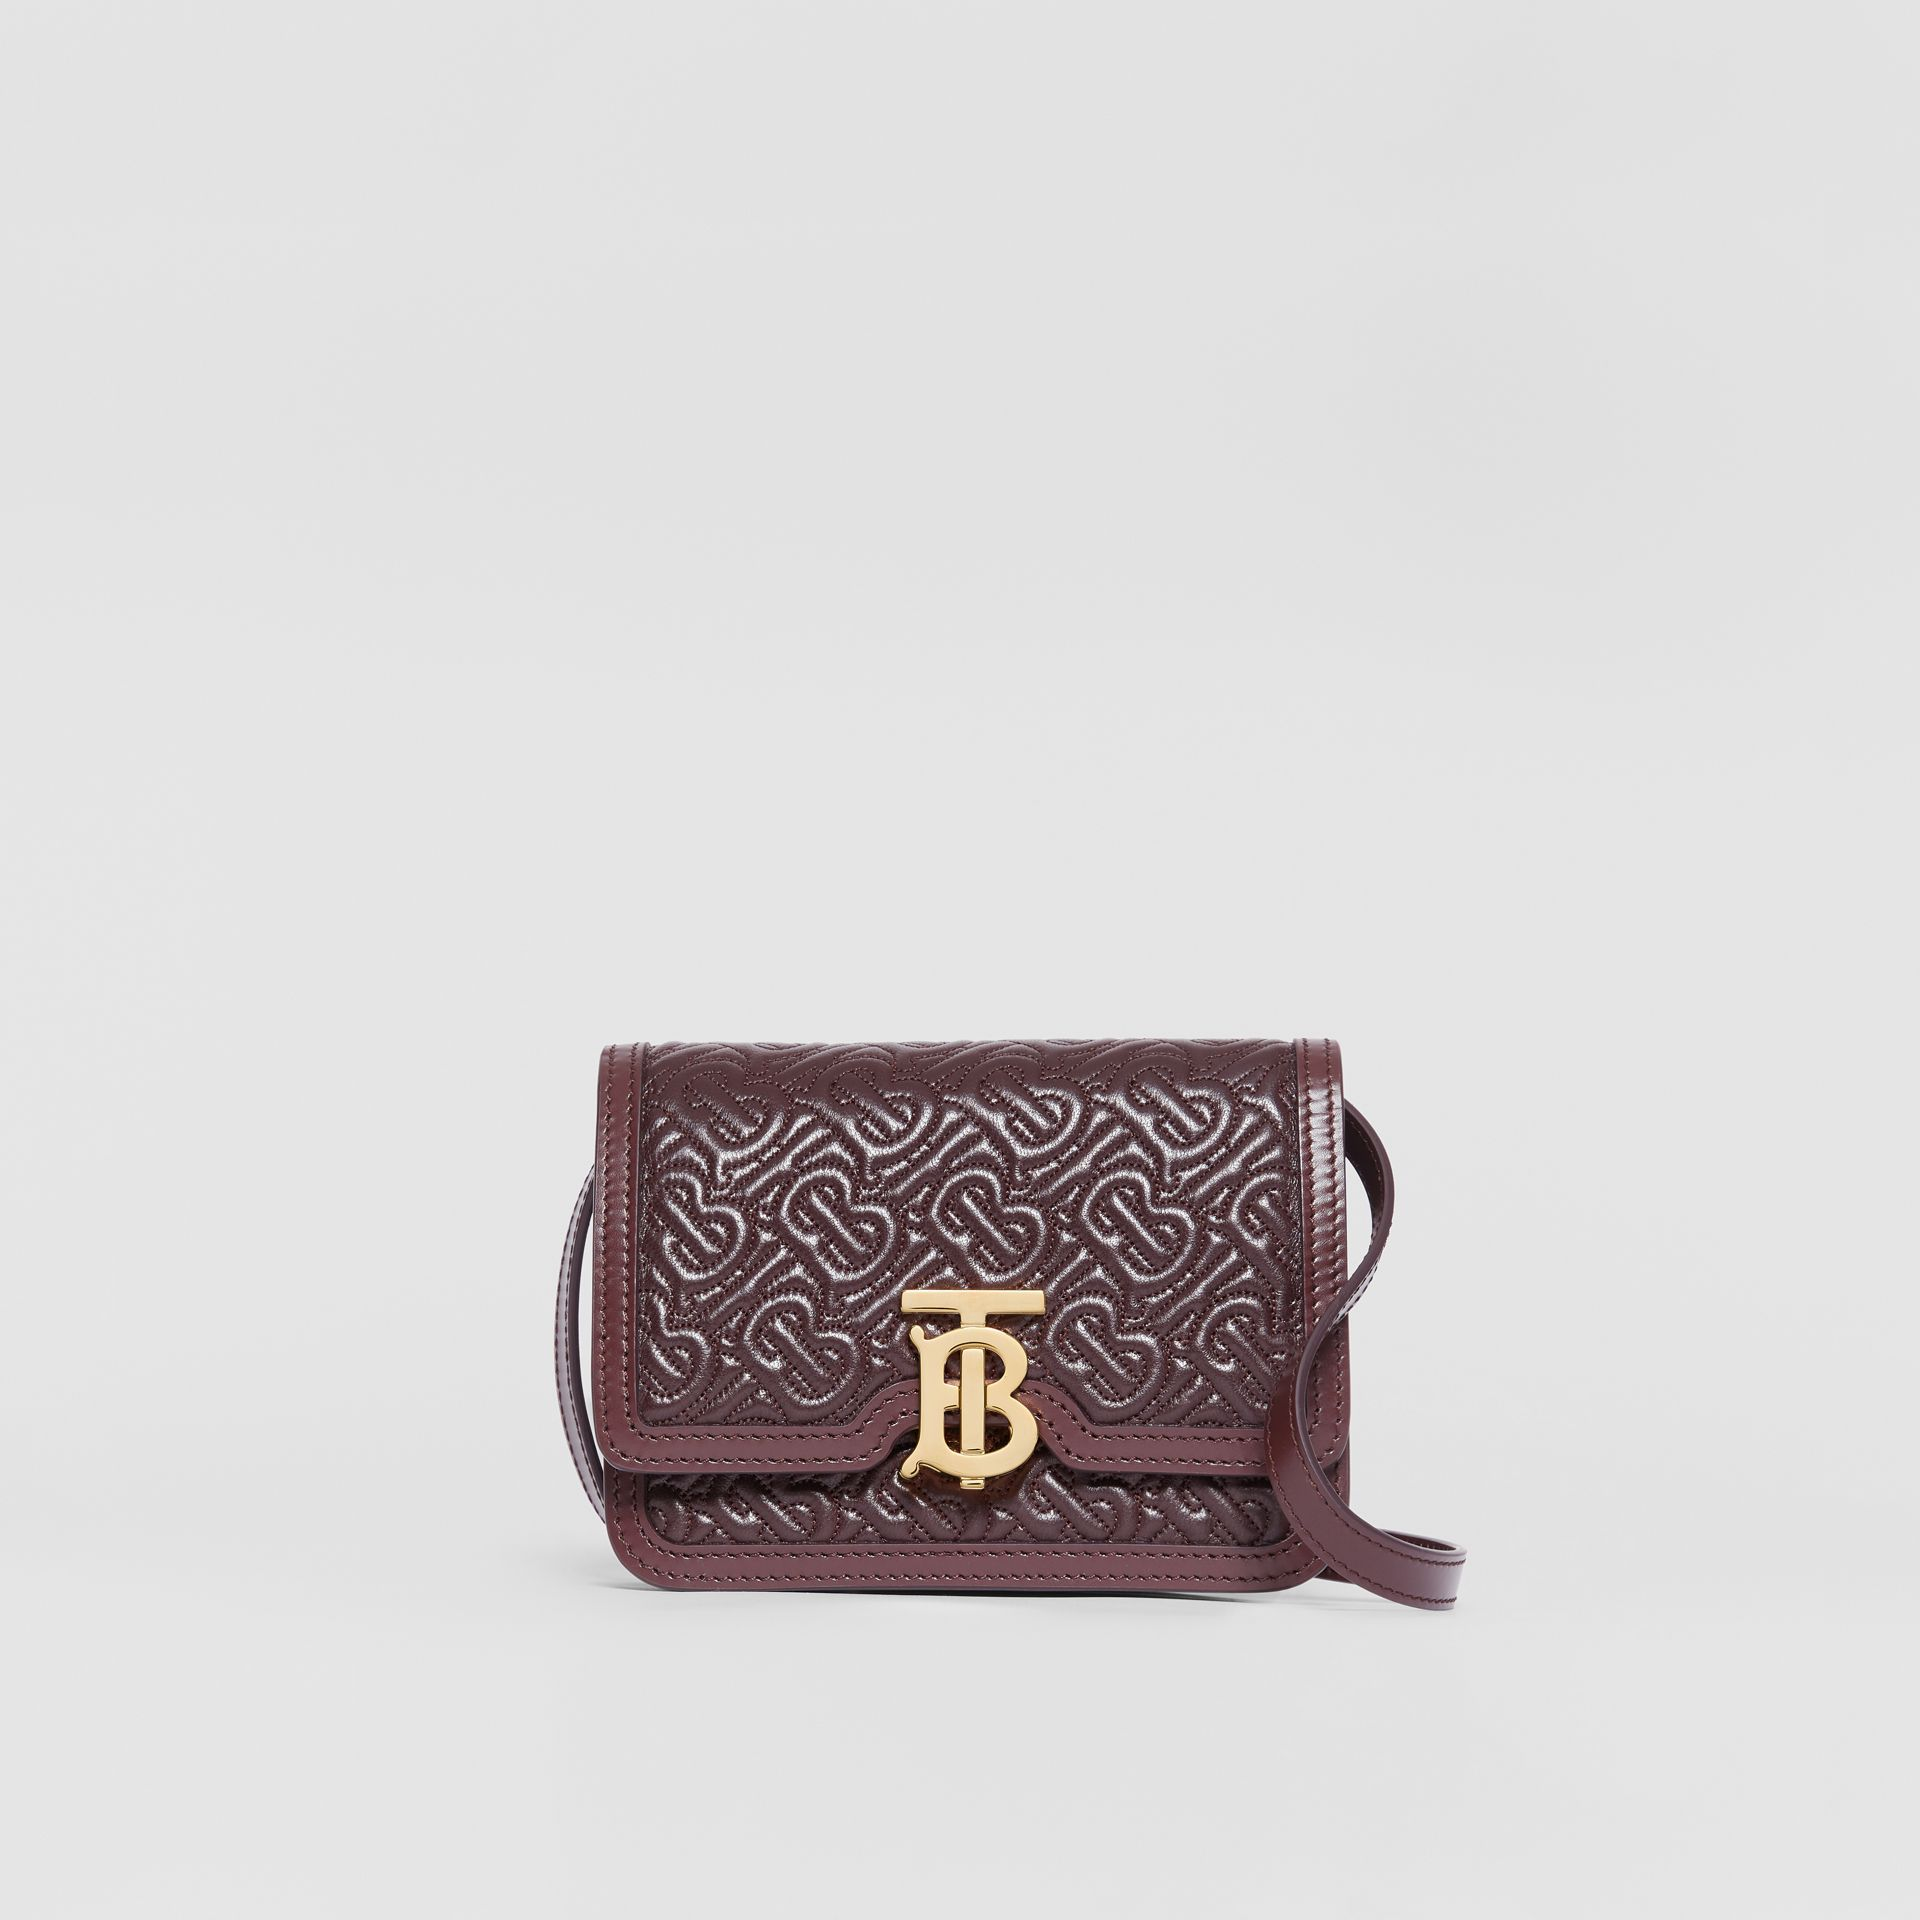 Mini Quilted Monogram Lambskin TB Bag in Dark Burgundy - Women | Burberry - gallery image 0